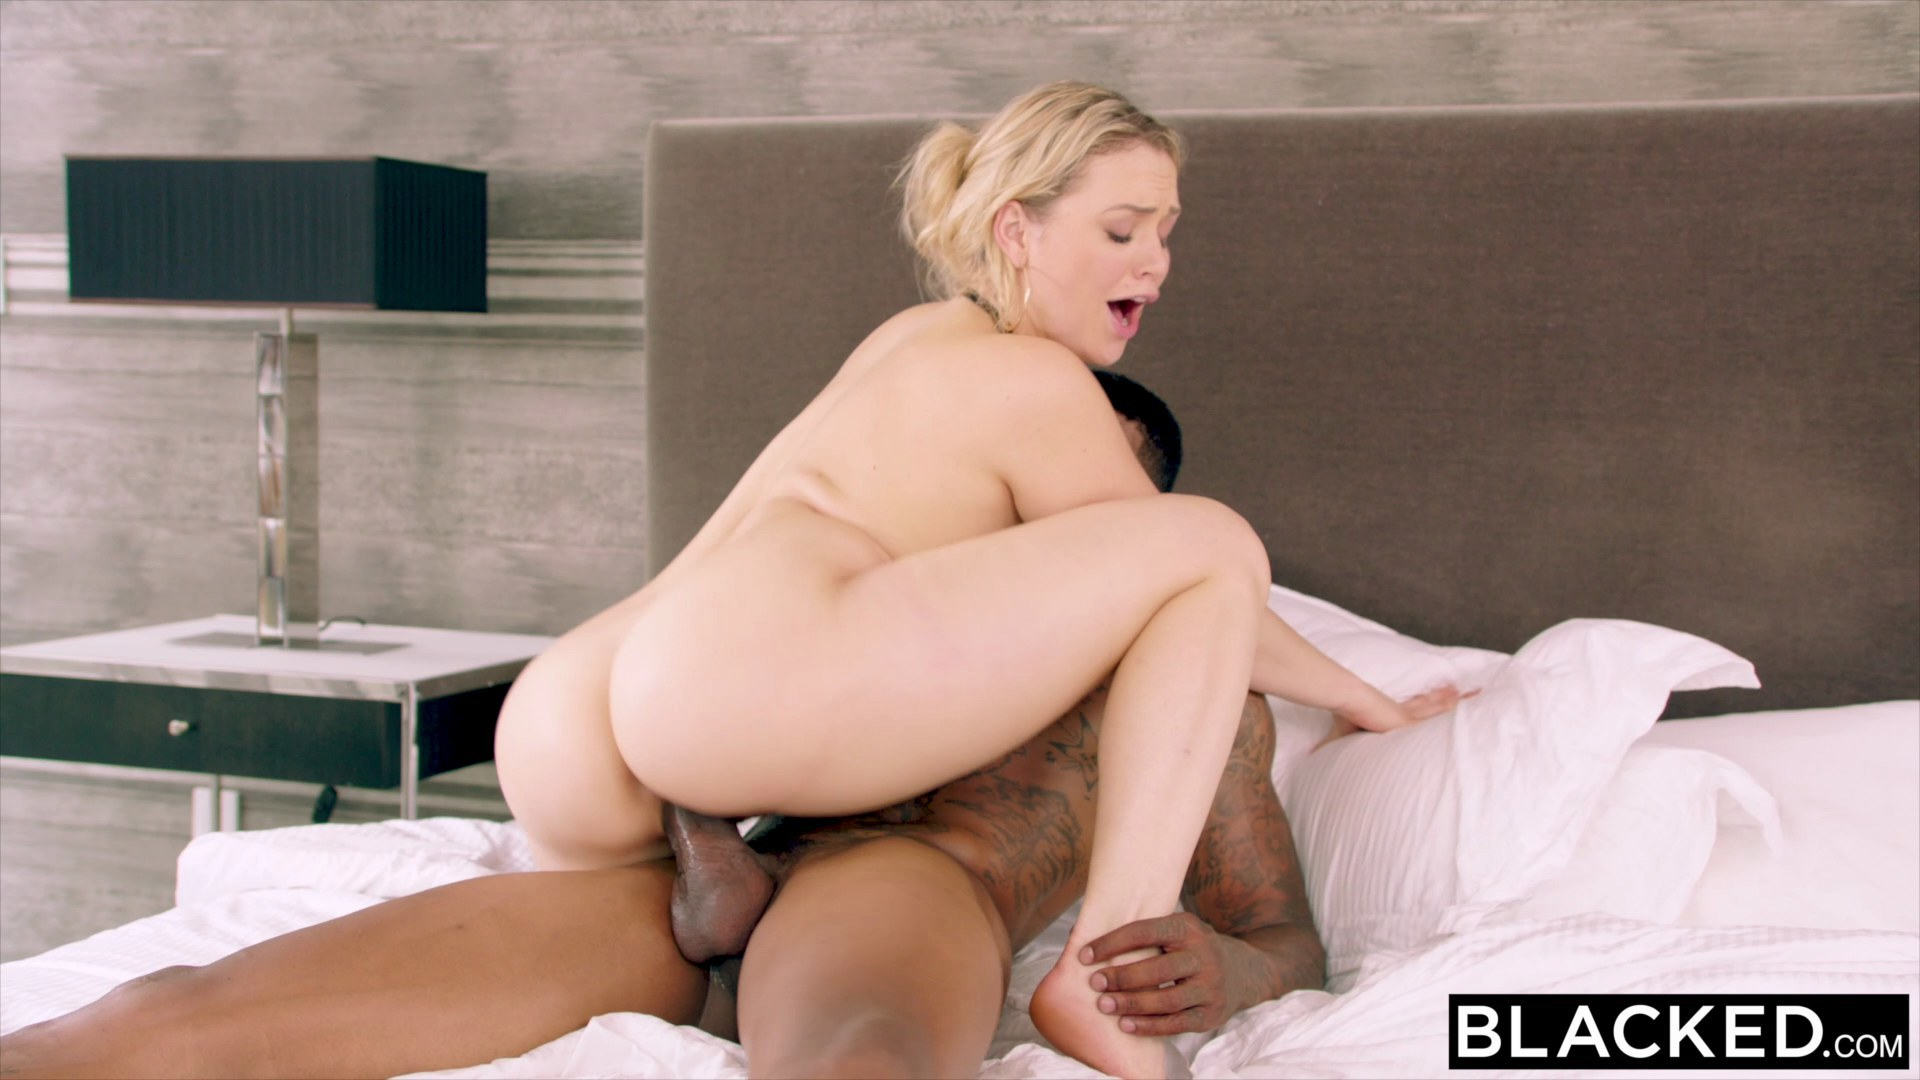 Free Doggystyle Porn Videos Subscribe Subscribed Unsubscribe 1201 Blacked Mia Malkova Loves Bbc In First Ir